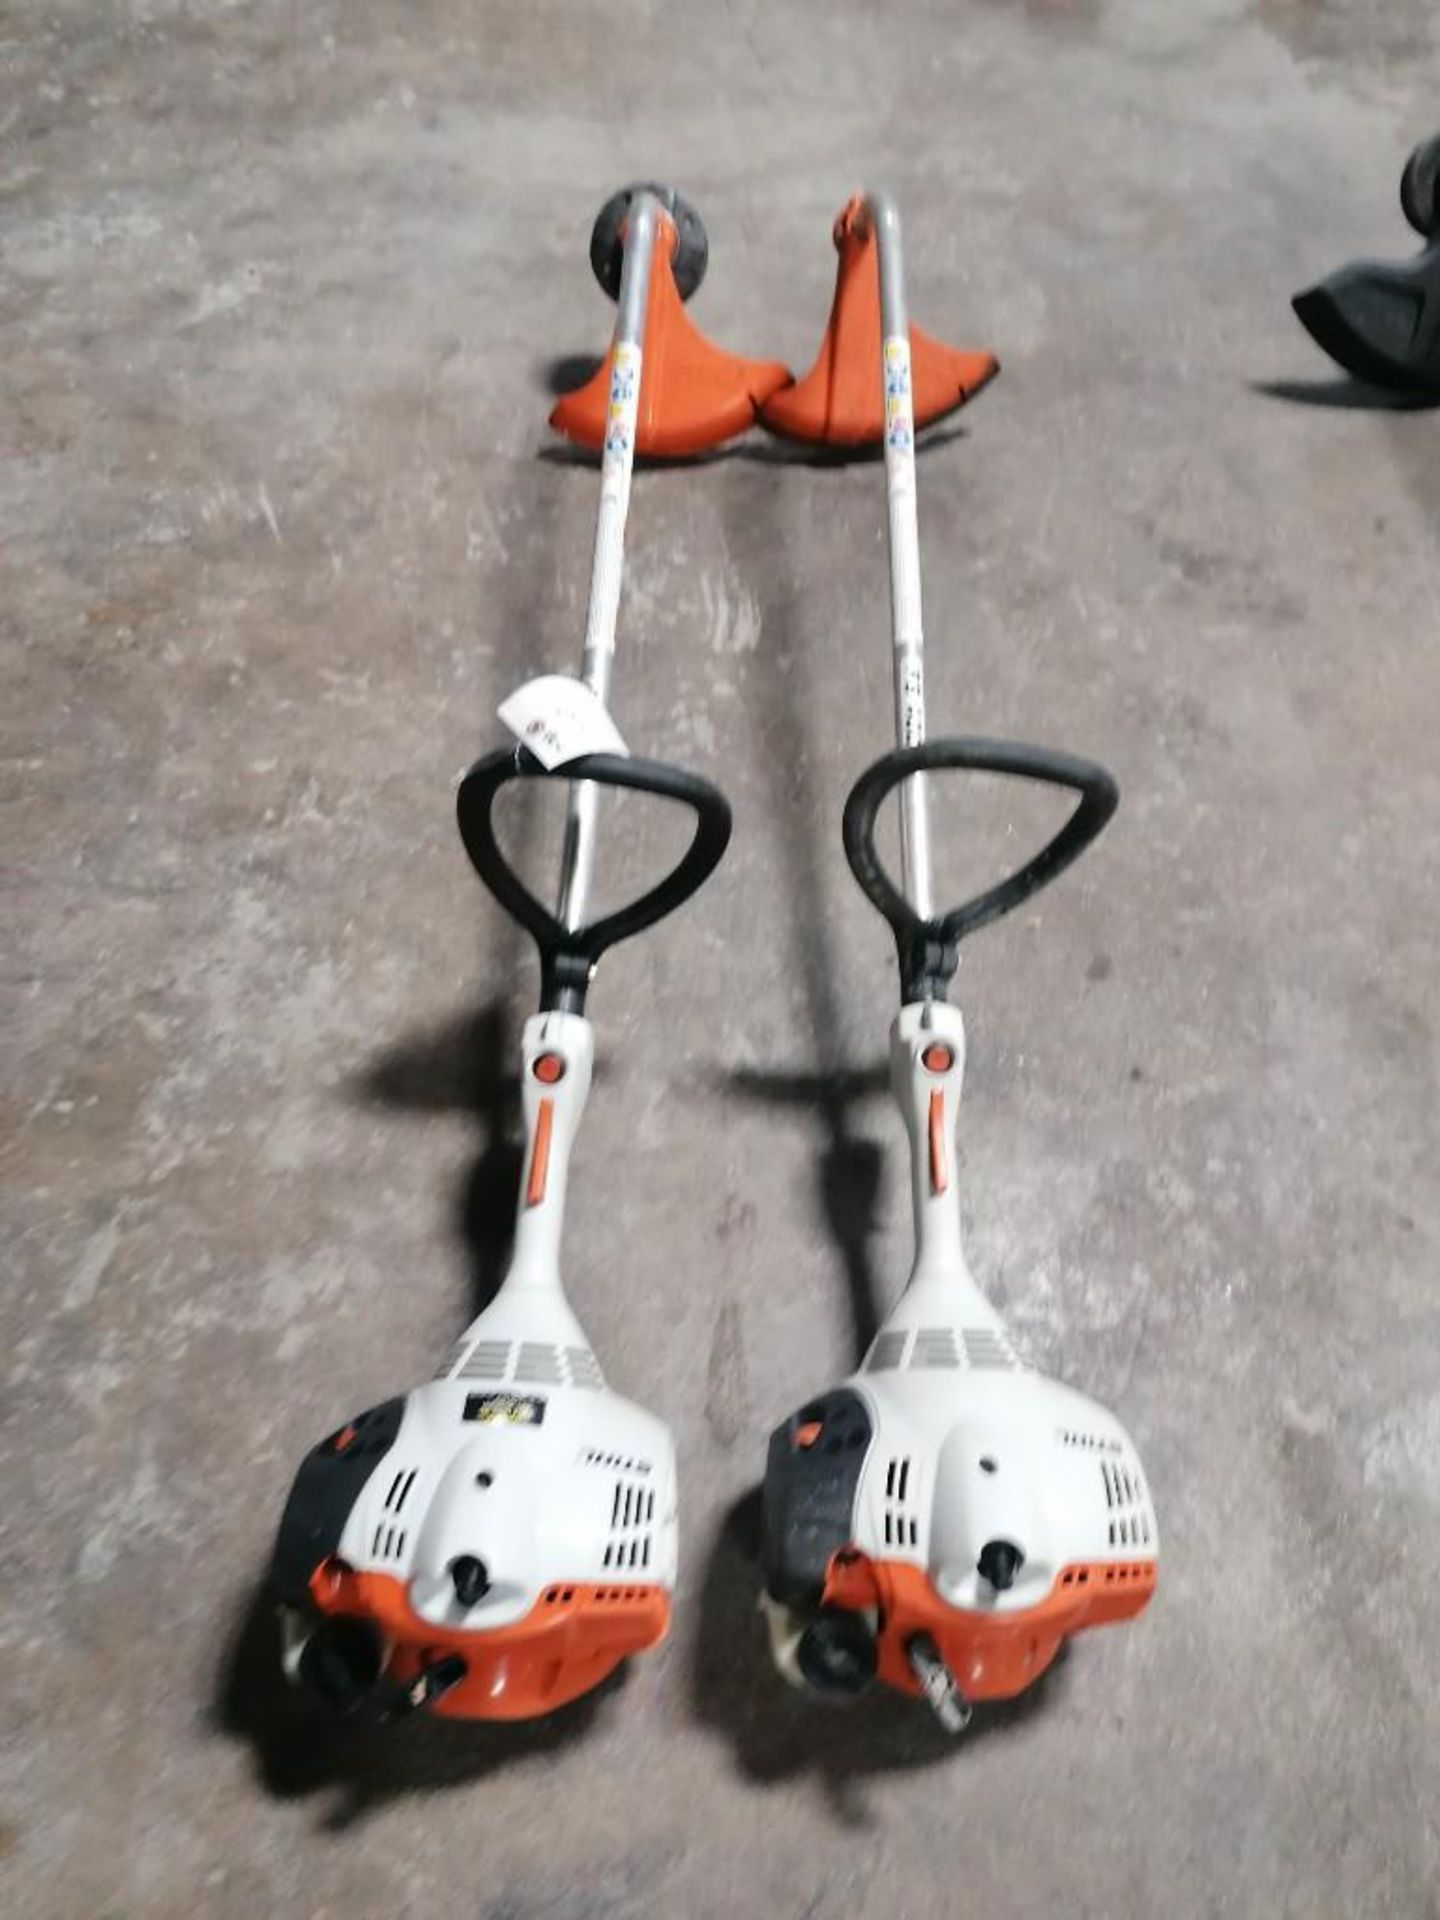 Lot 34 - (2) Stihl FS40C String Trimmer. Located at 301 E Henry Street, Mt. Pleasant, IA 52641.